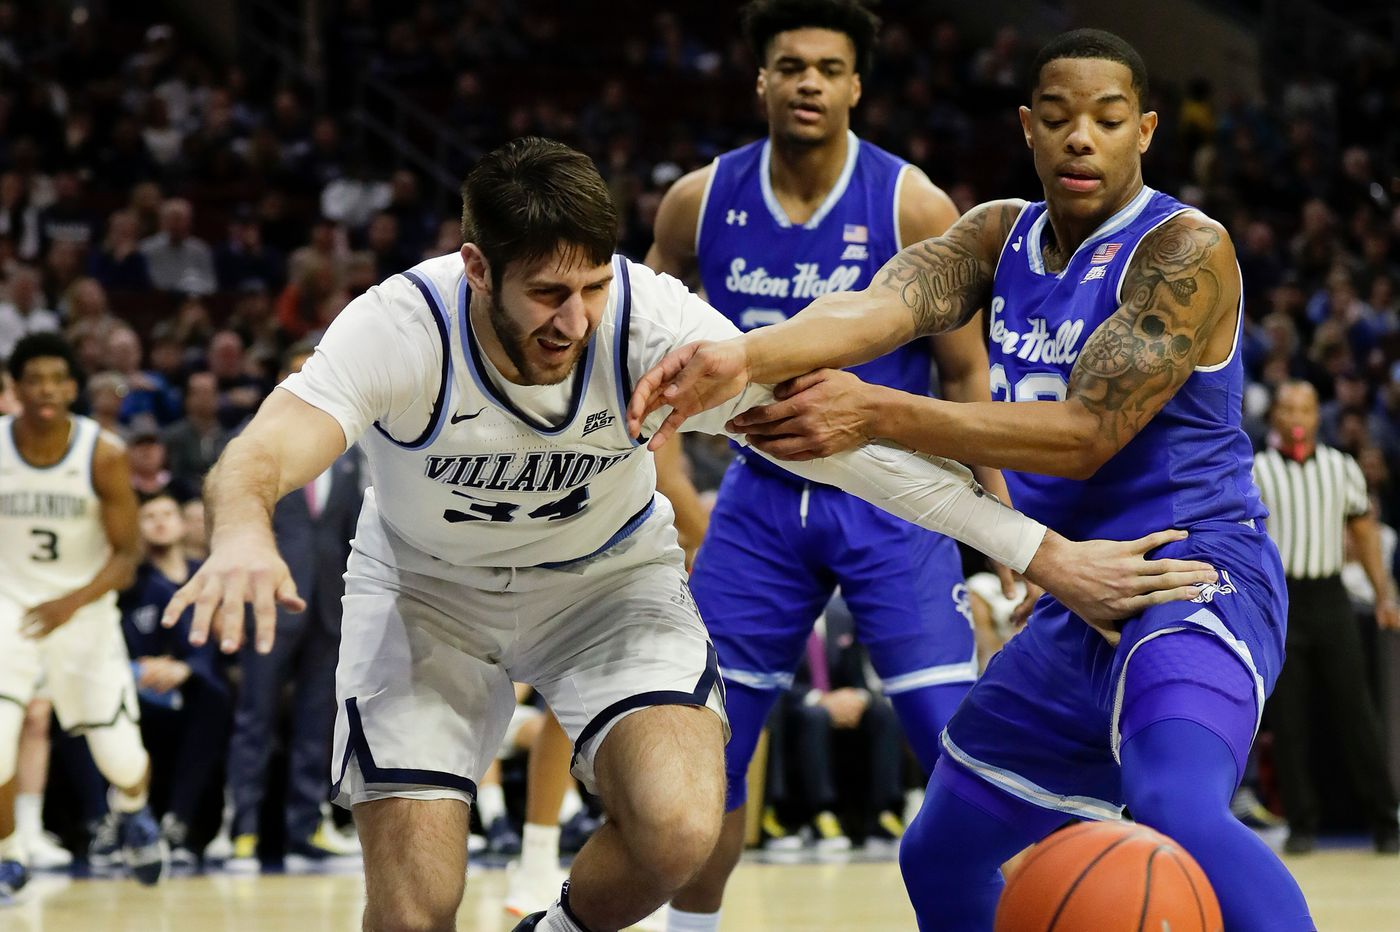 Villanova announces Tim Delaney will transfer to Adelphi, join his brother there